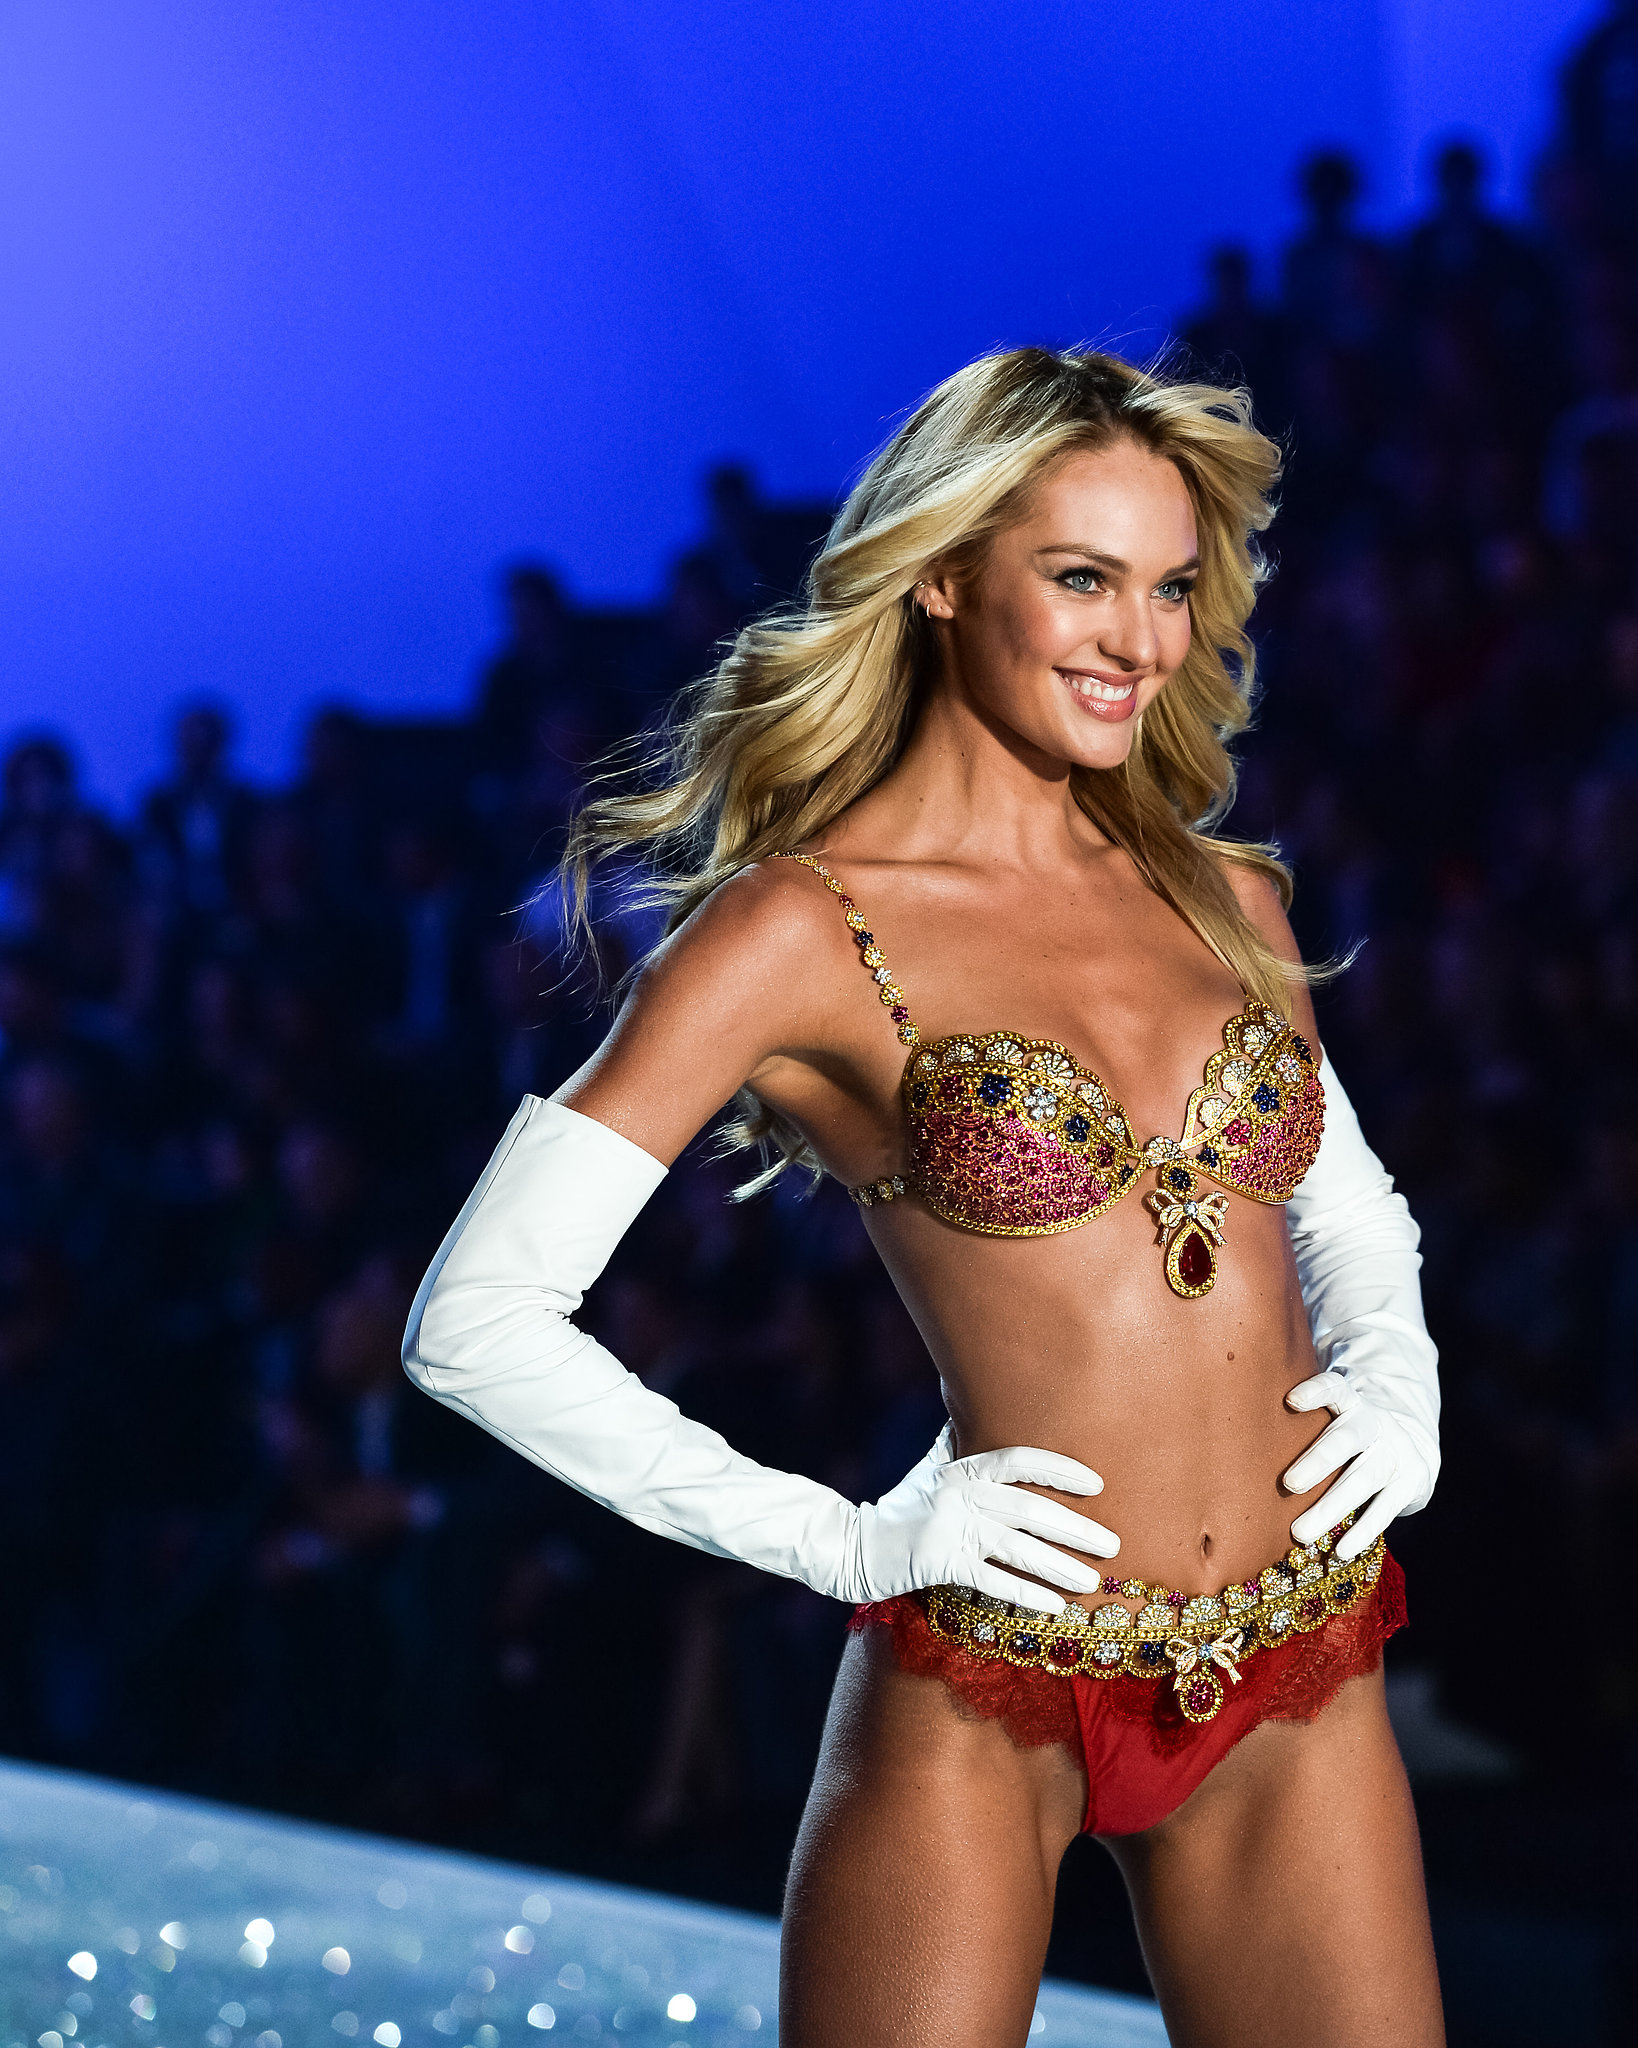 Candice Swanepoel Before And After Weight Loss - WeSharePics Union J Monkey